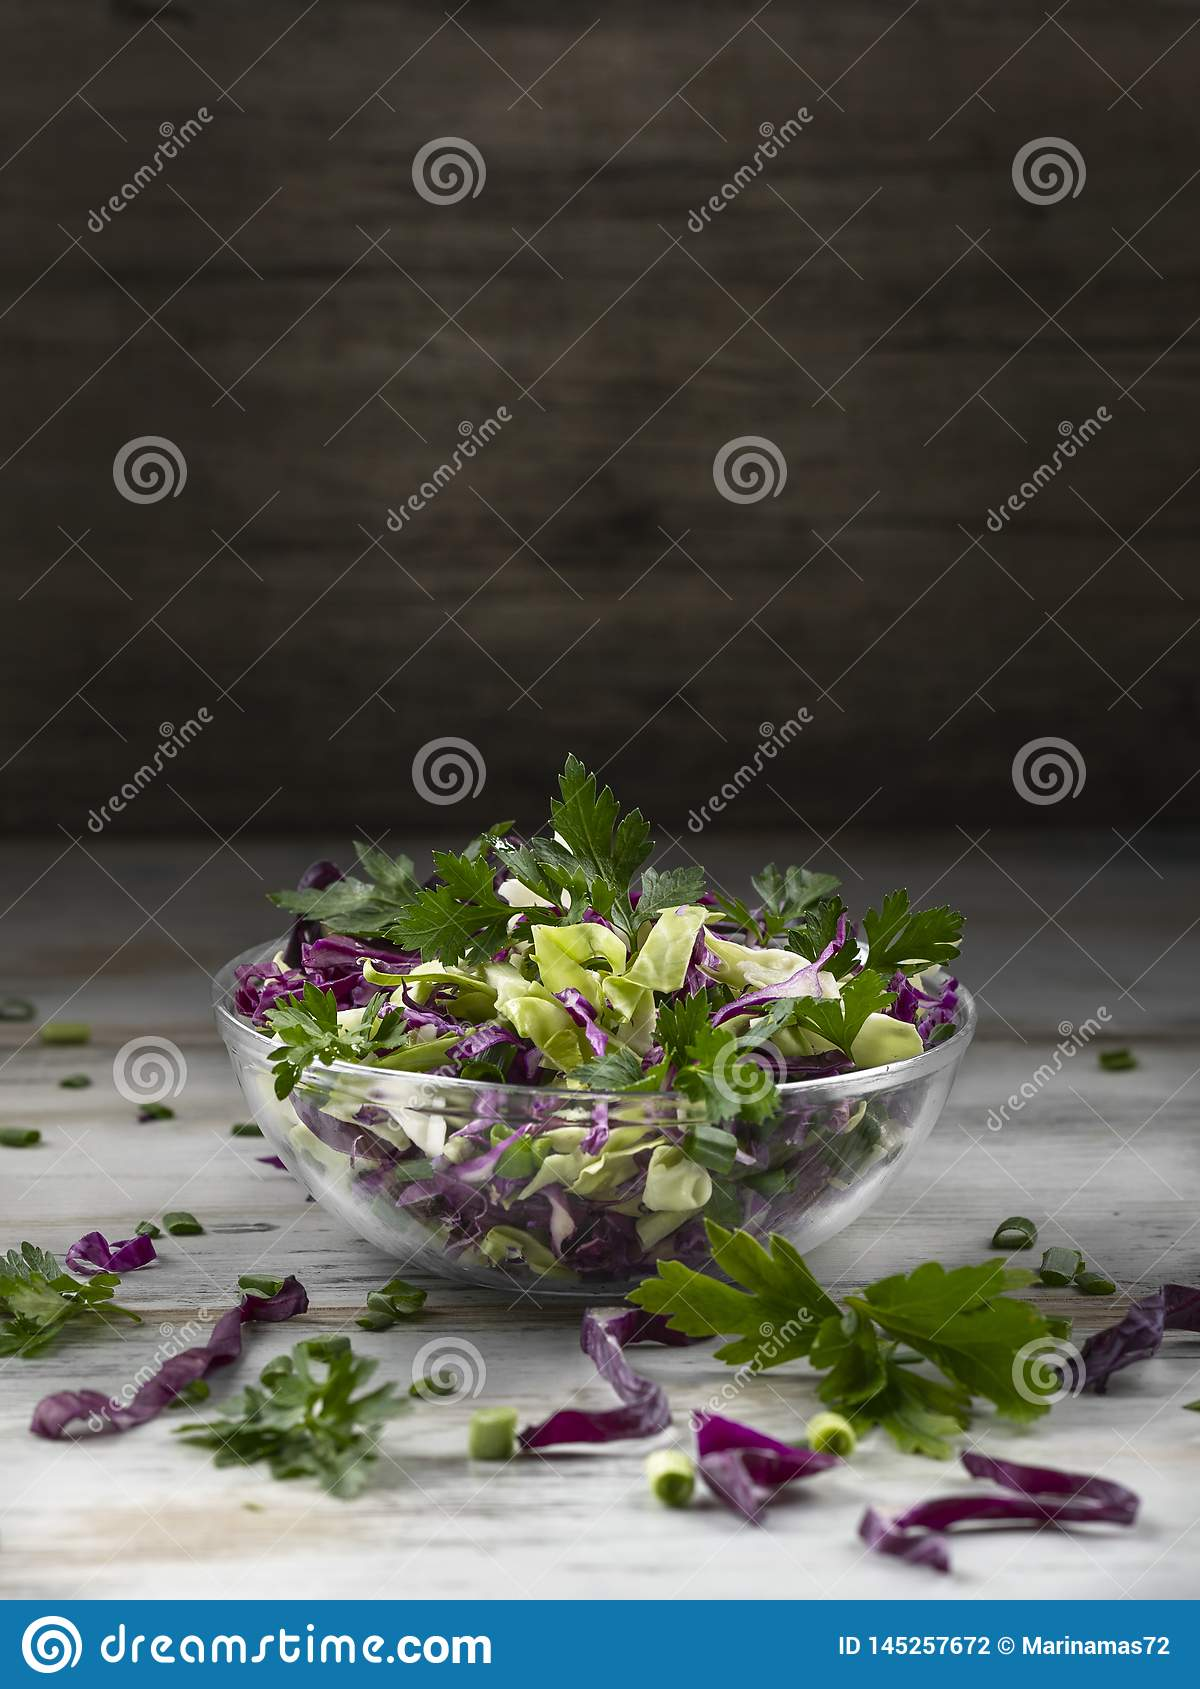 Salad of red cabbage in a glass salad bowls